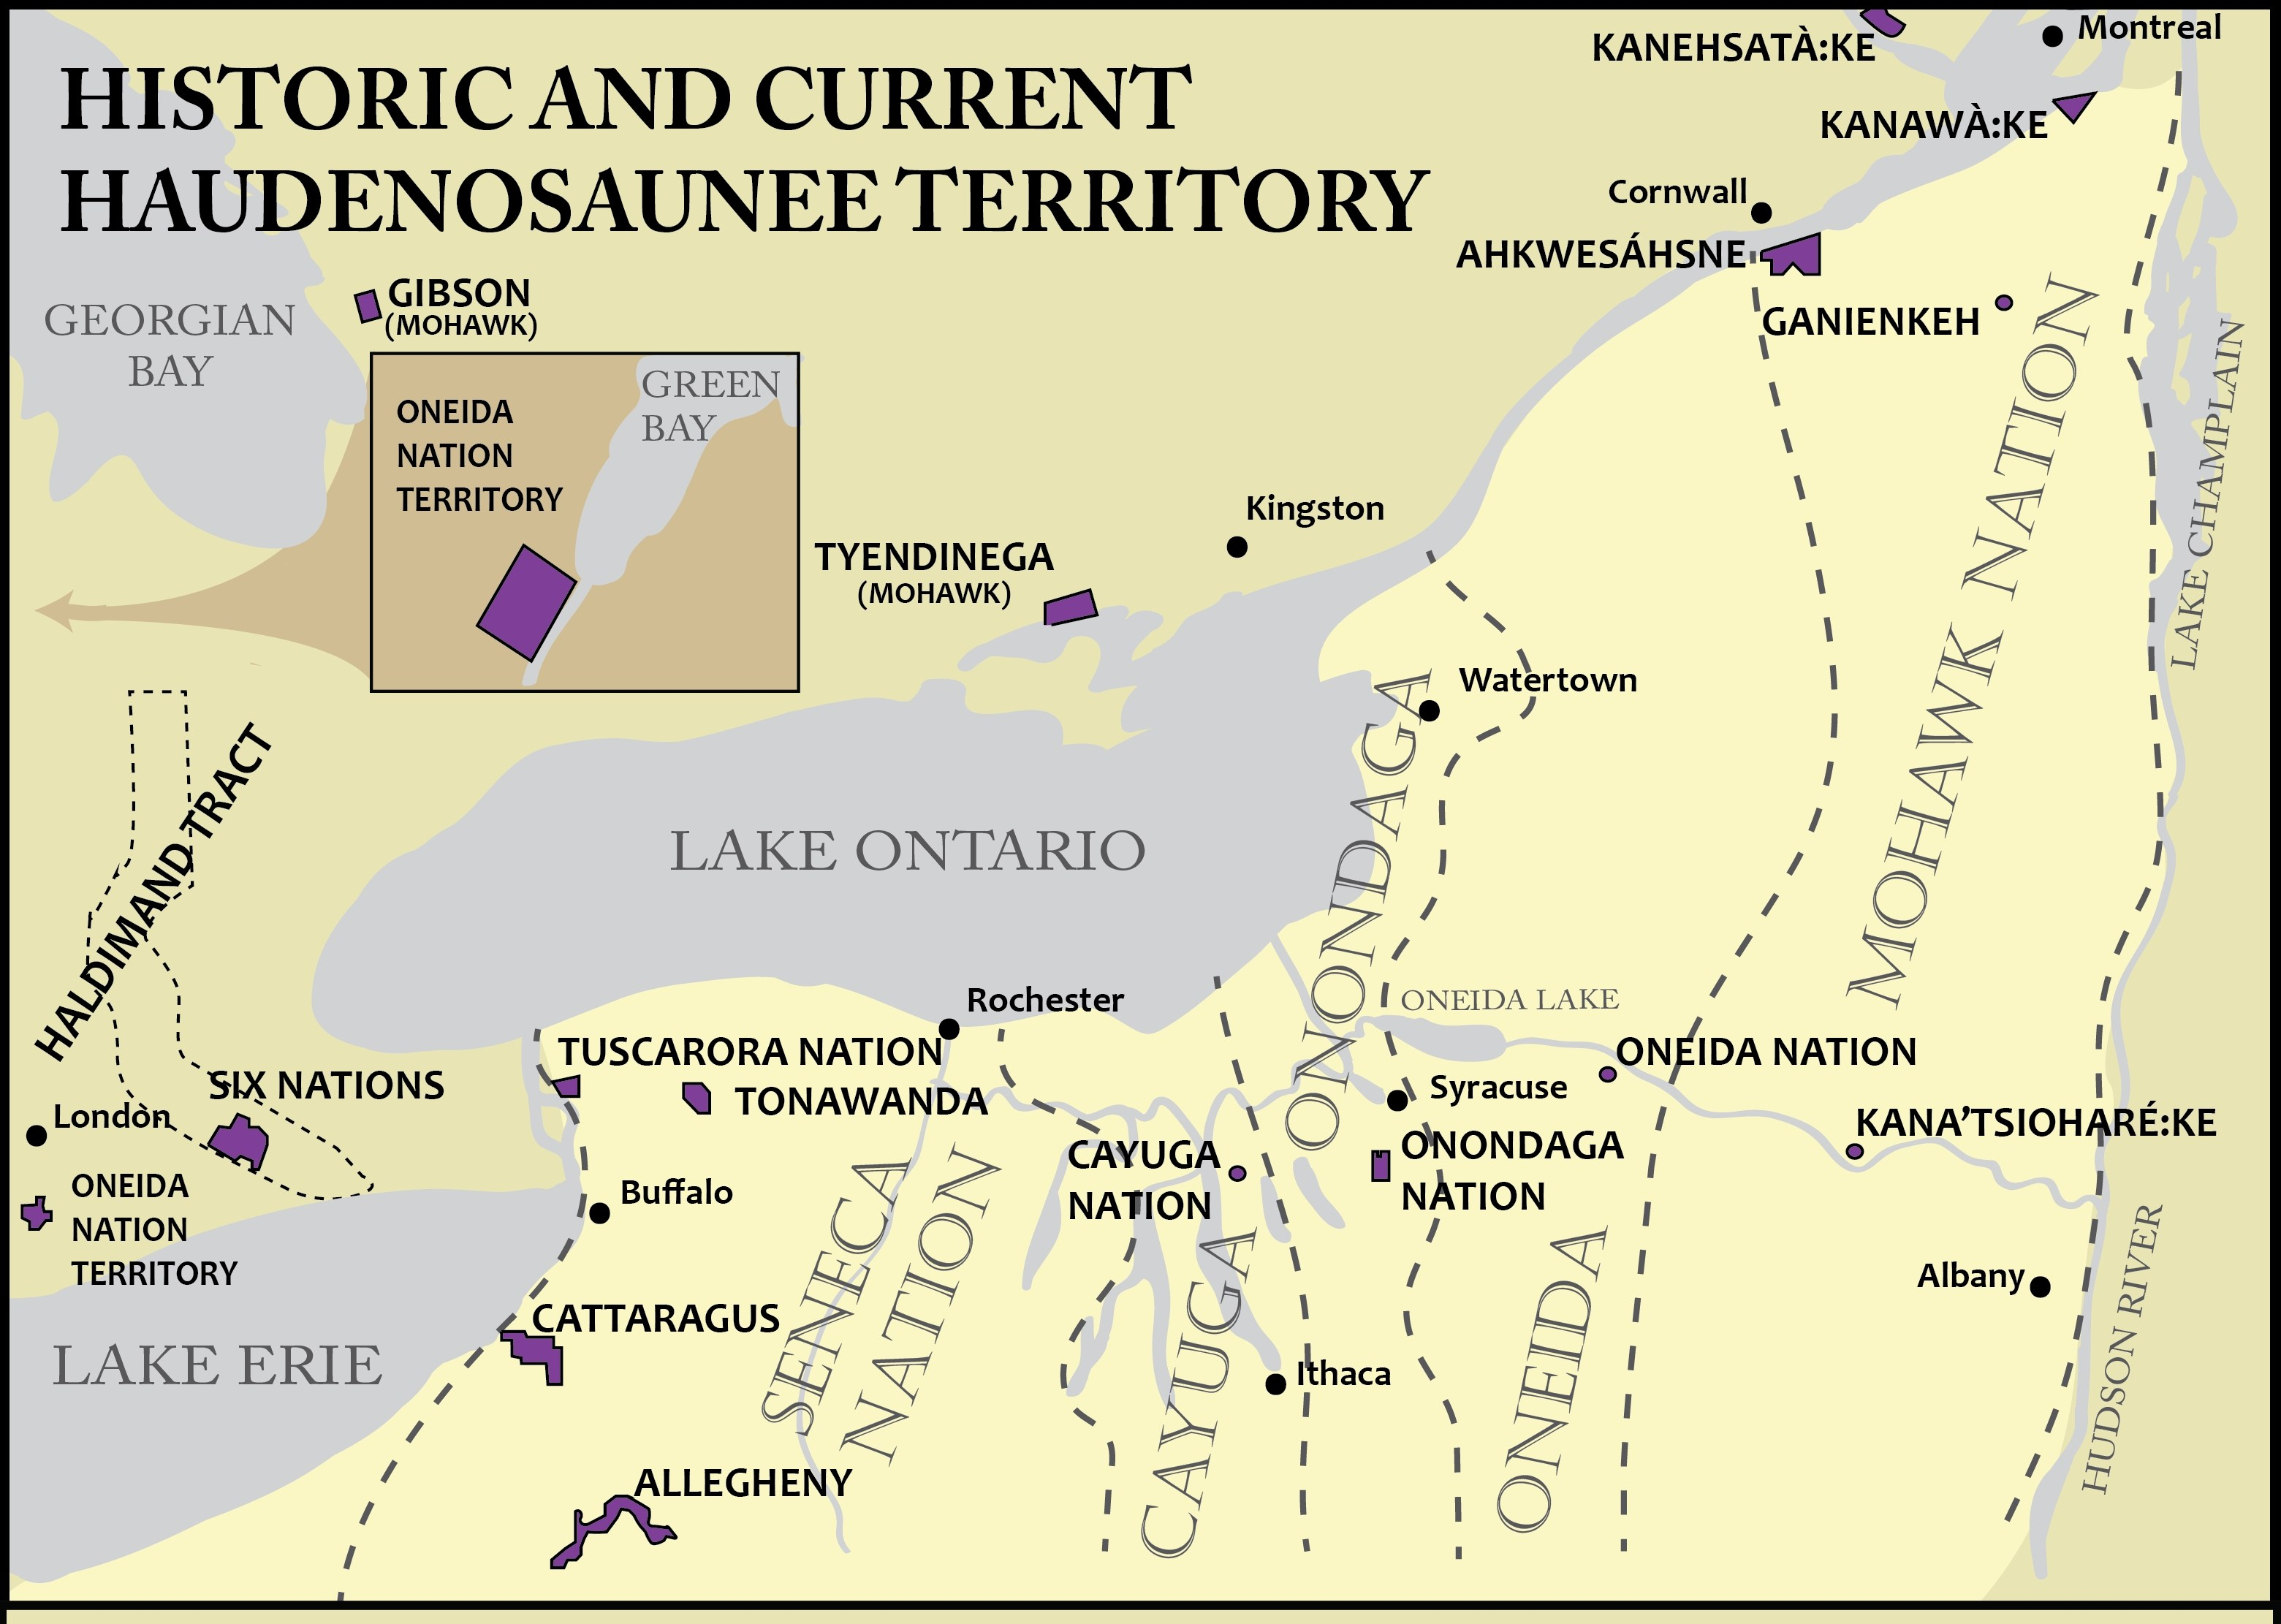 Historical-and-Current-Haudenosaunee-Territory